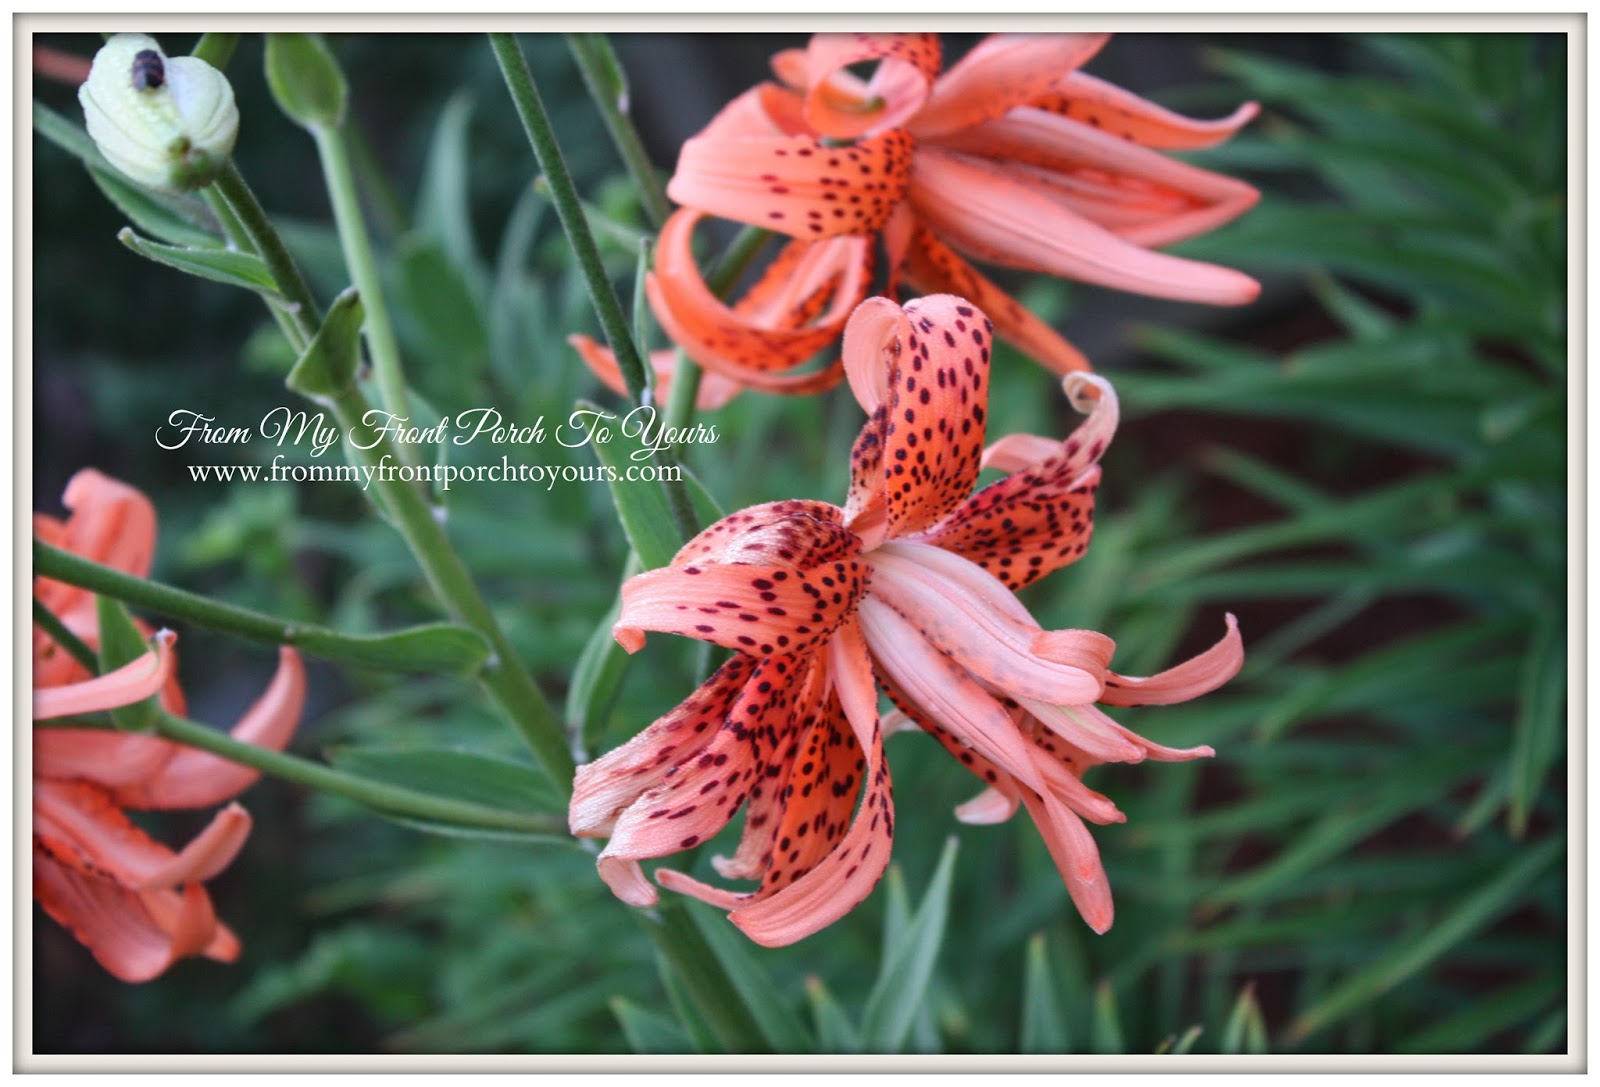 From My Front Porch To Yours- Flower Garden Dragon Lillie